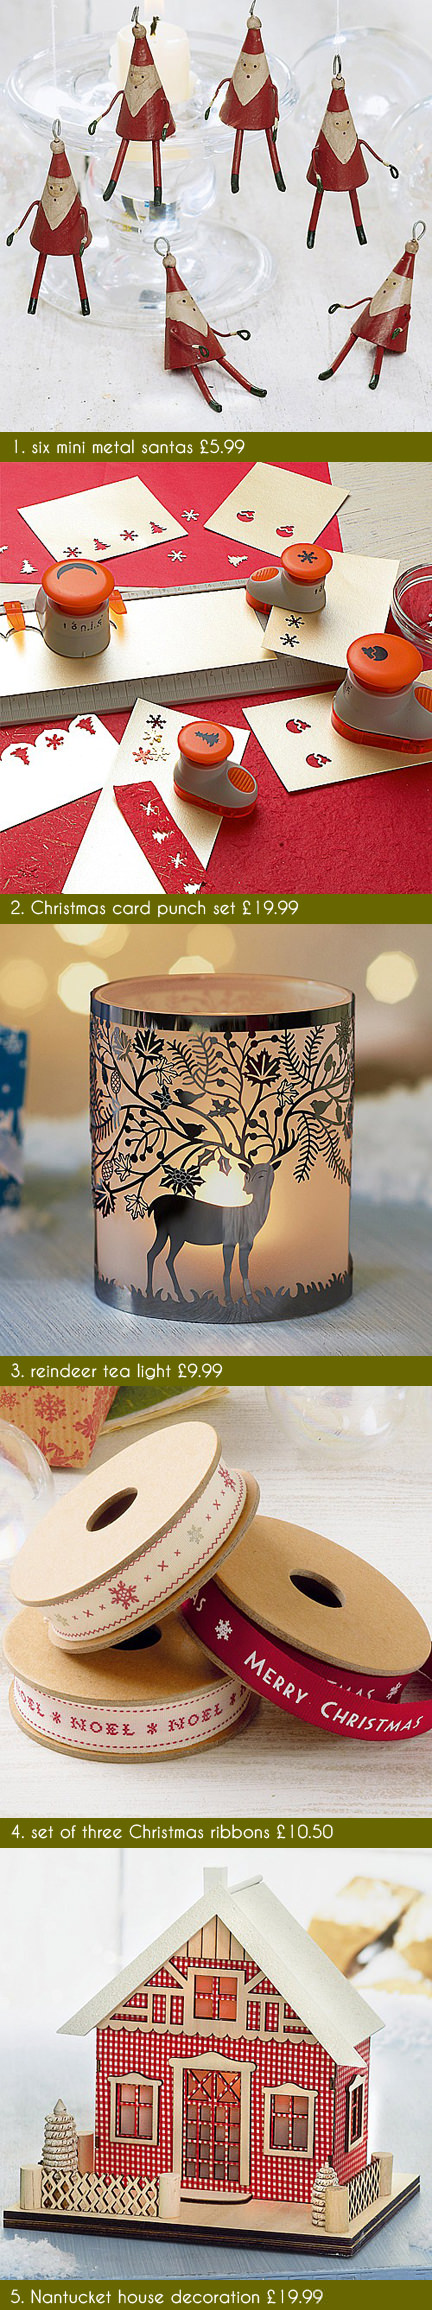 selection of festive Christmas items available on the Culture Vulture website